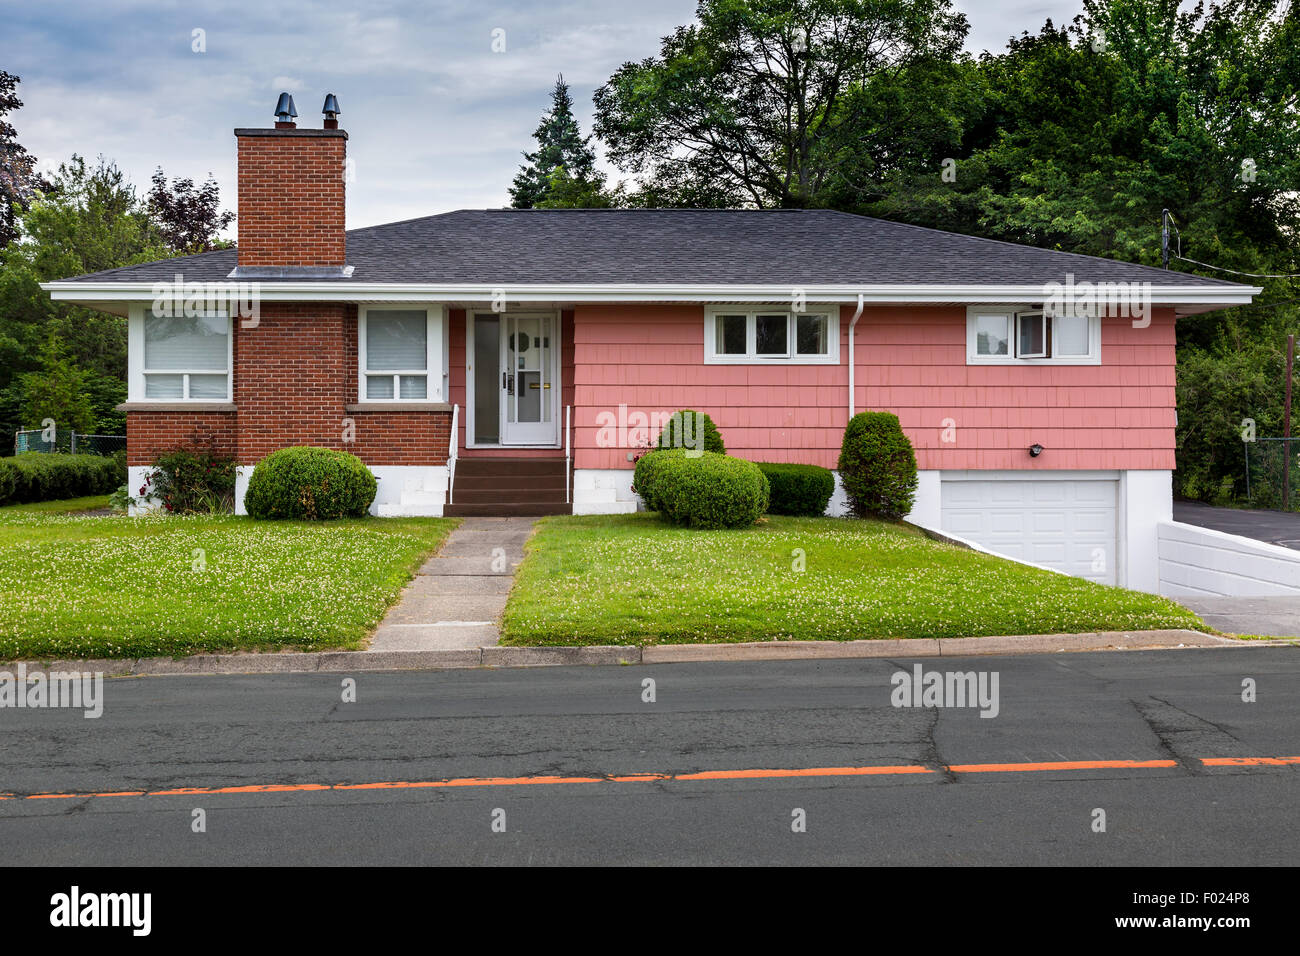 North American Bungalow From The Sixties